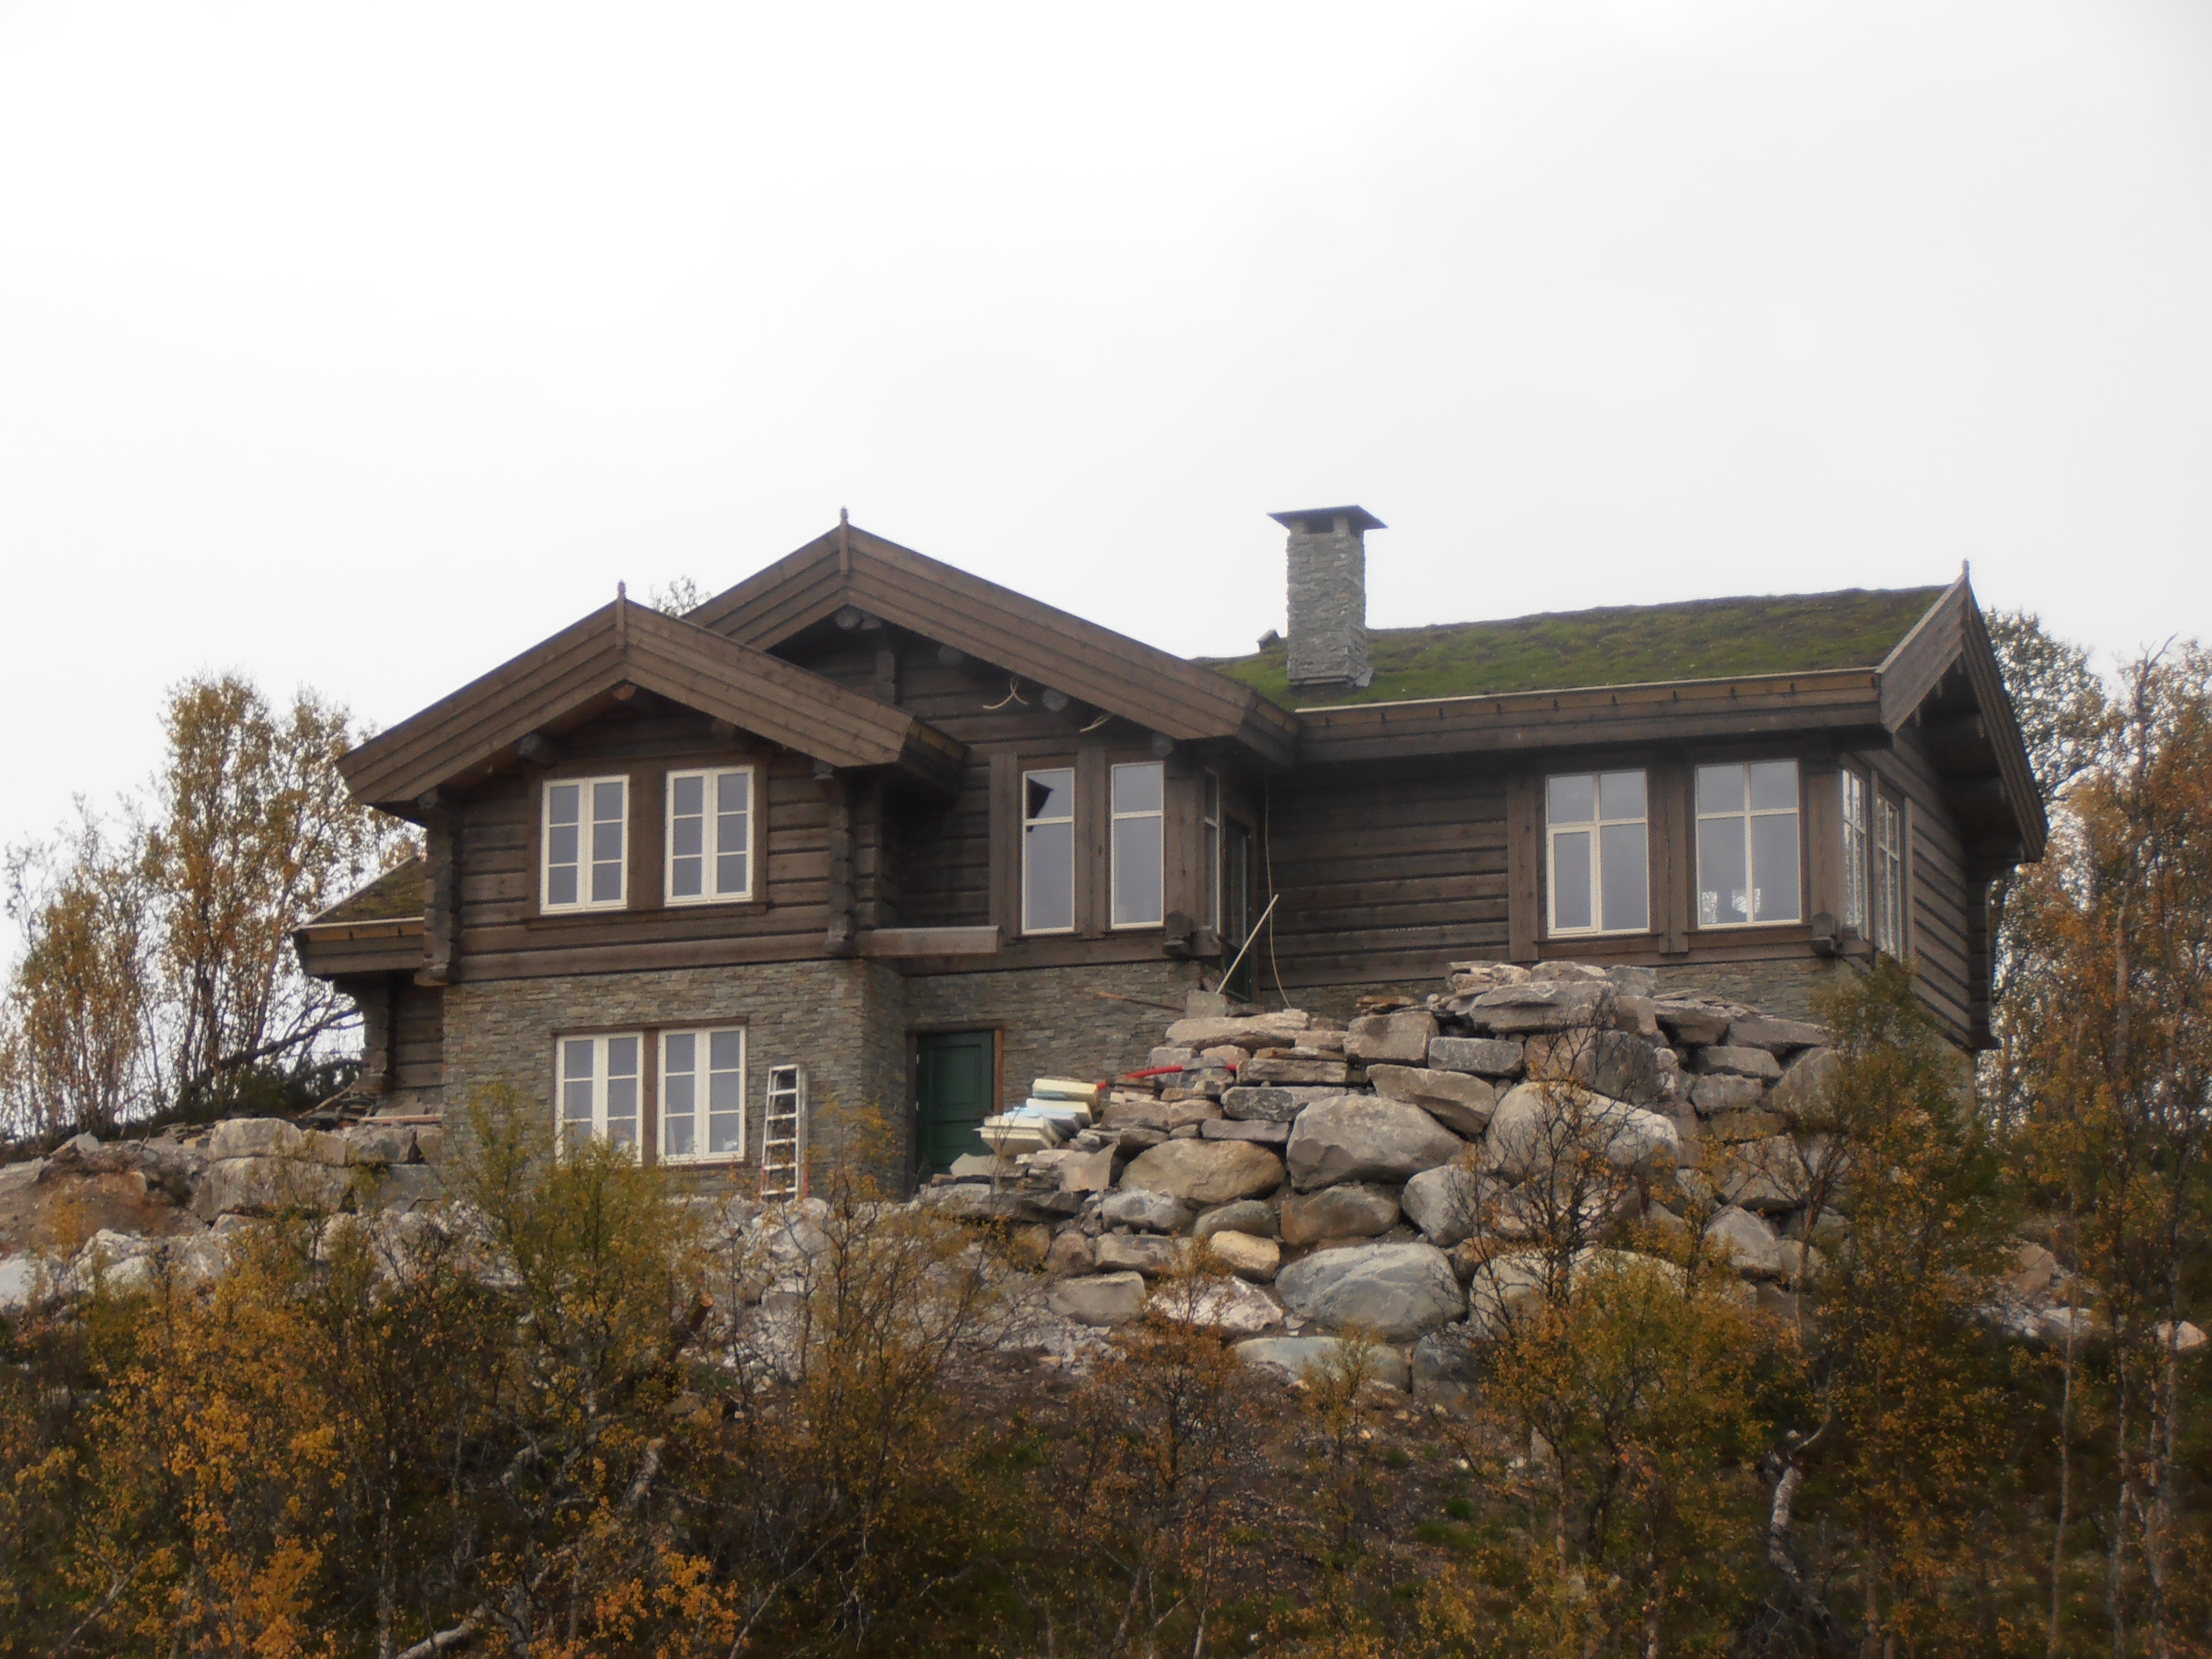 Living house hovden 5 hovden norway baltic wood houses - Norwegian wood houses ...